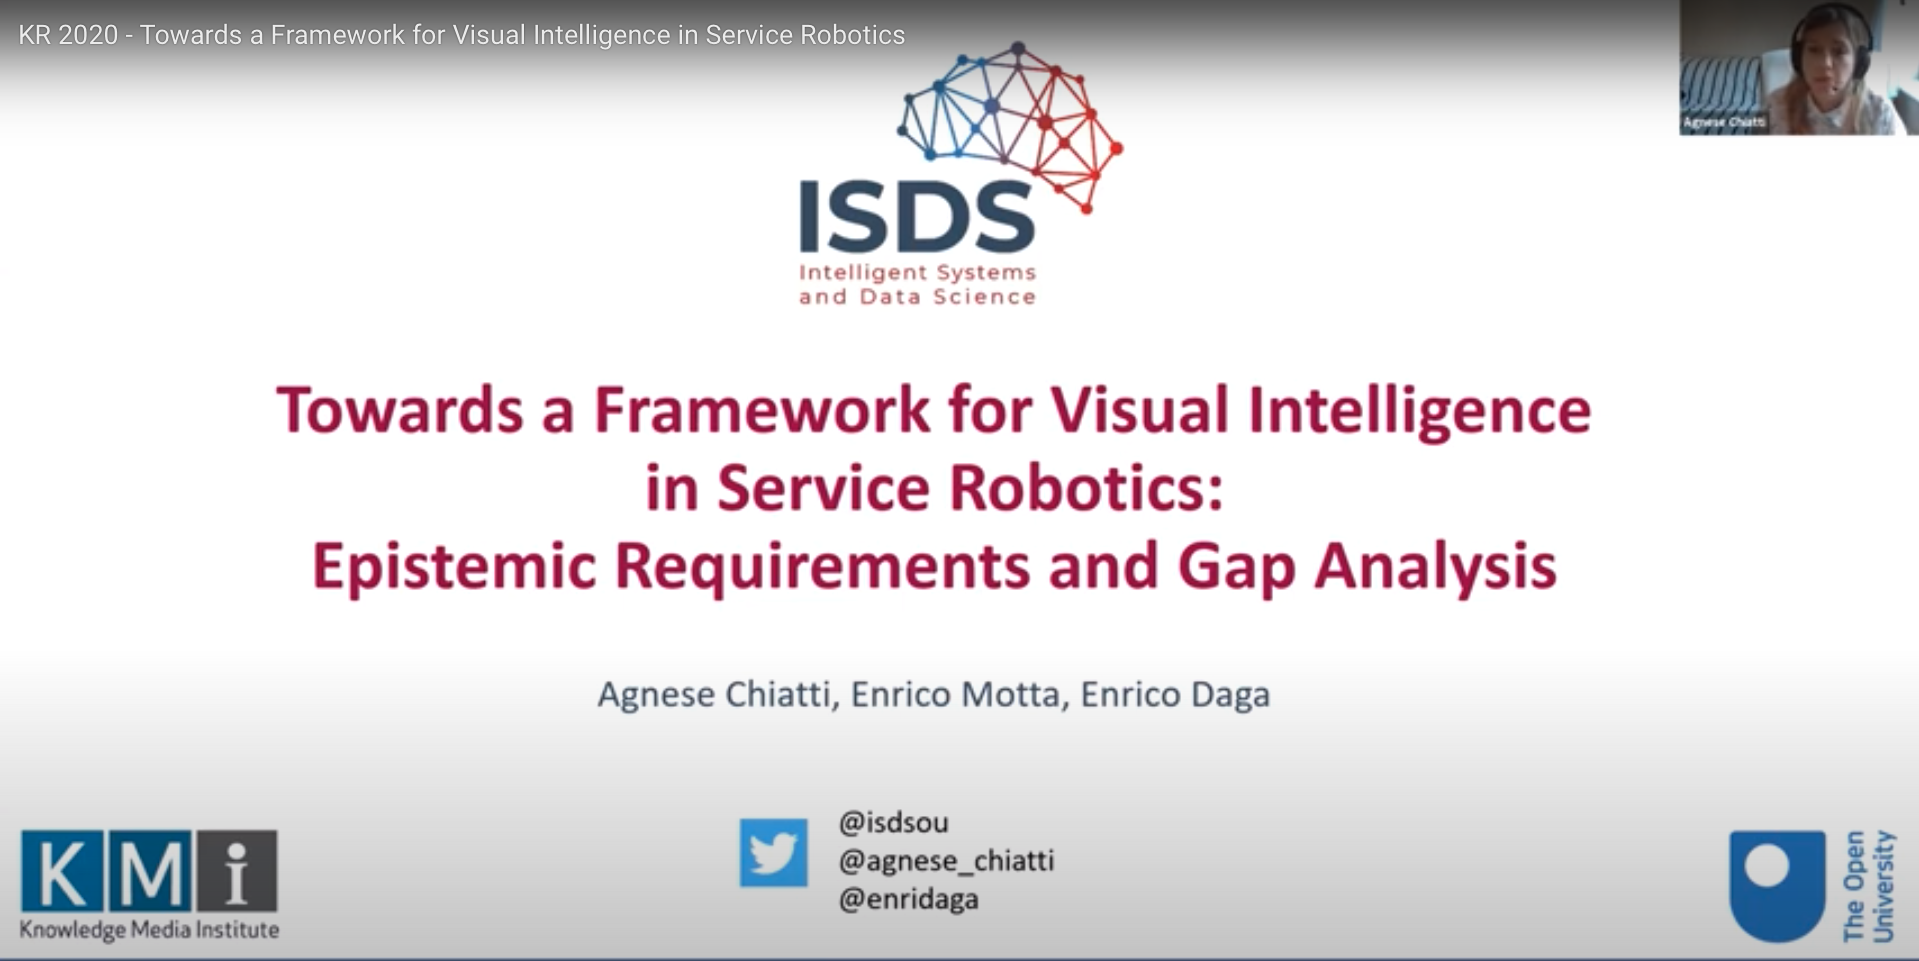 Presentation title: Towards a Framework for Visual Intelligence in Service Robotics: Epistemic Requirements and Gap Analysis